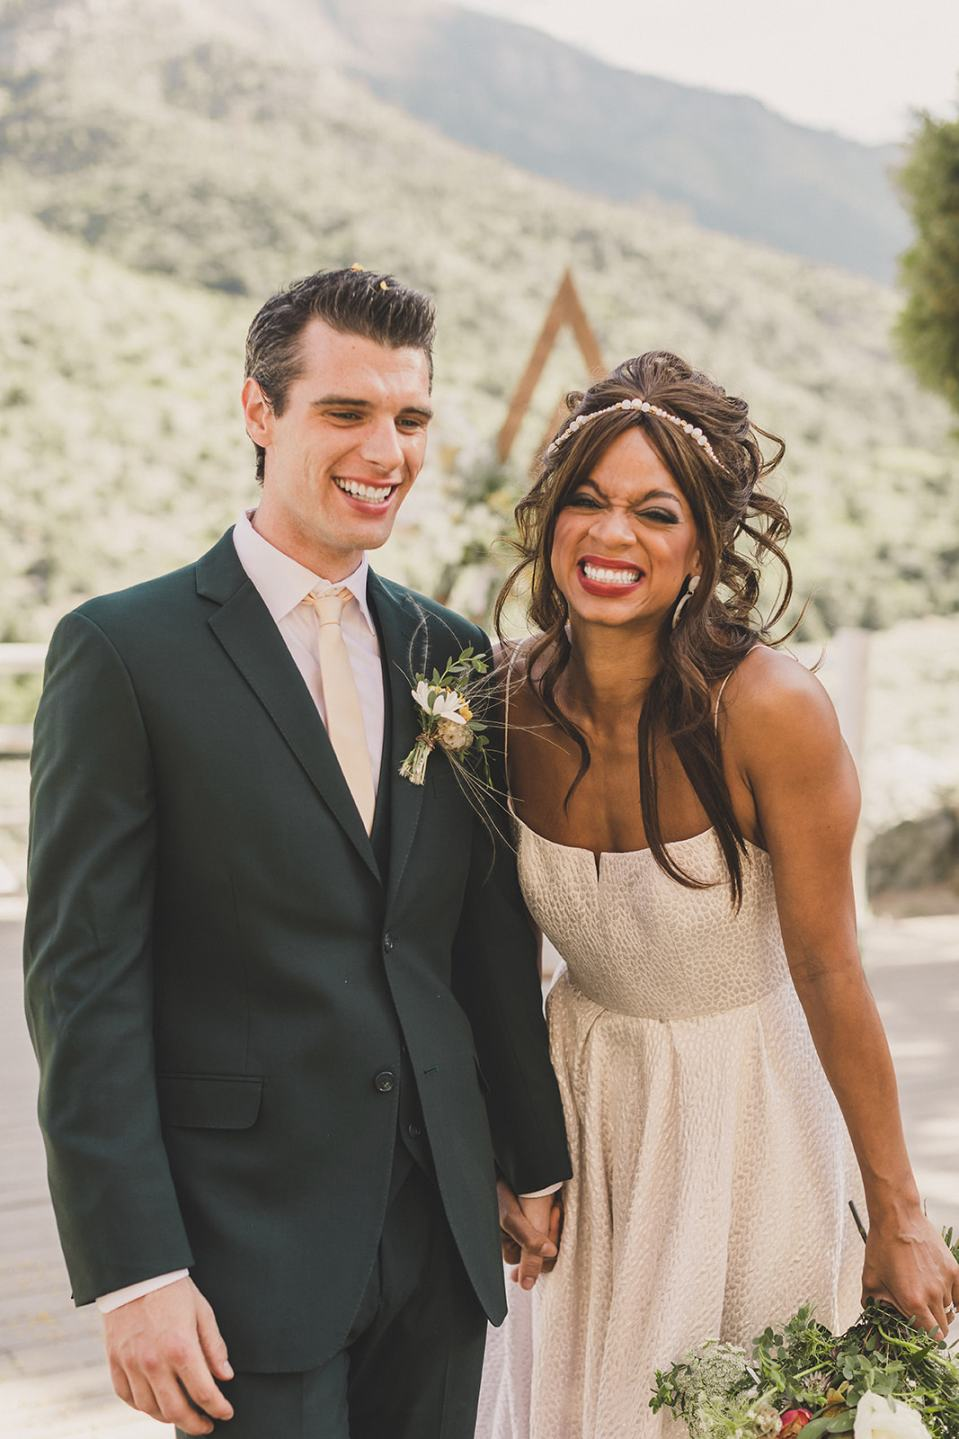 newlyweds celebrate elopement in Las Vegas photographed by Taylor Made Photography